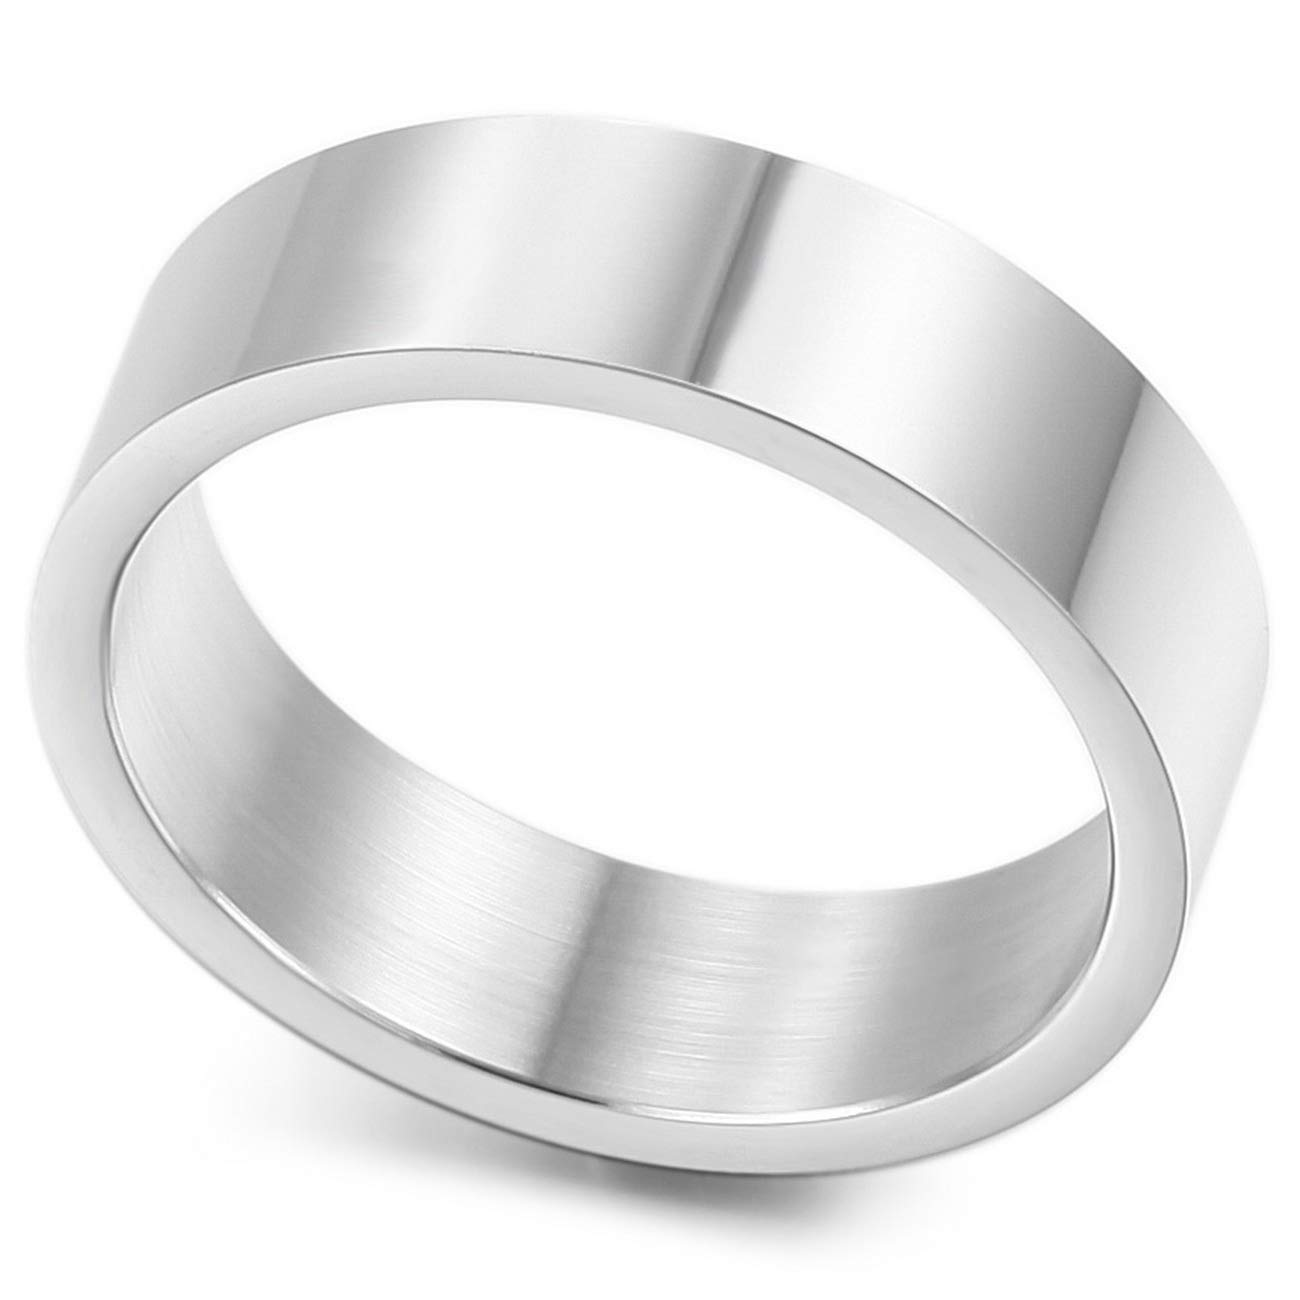 MeMeDIY 6mm Silver Tone Stainless Steel Ring Wedding Band Size 10 - Customized Engraving by MeMeDIY (Image #4)